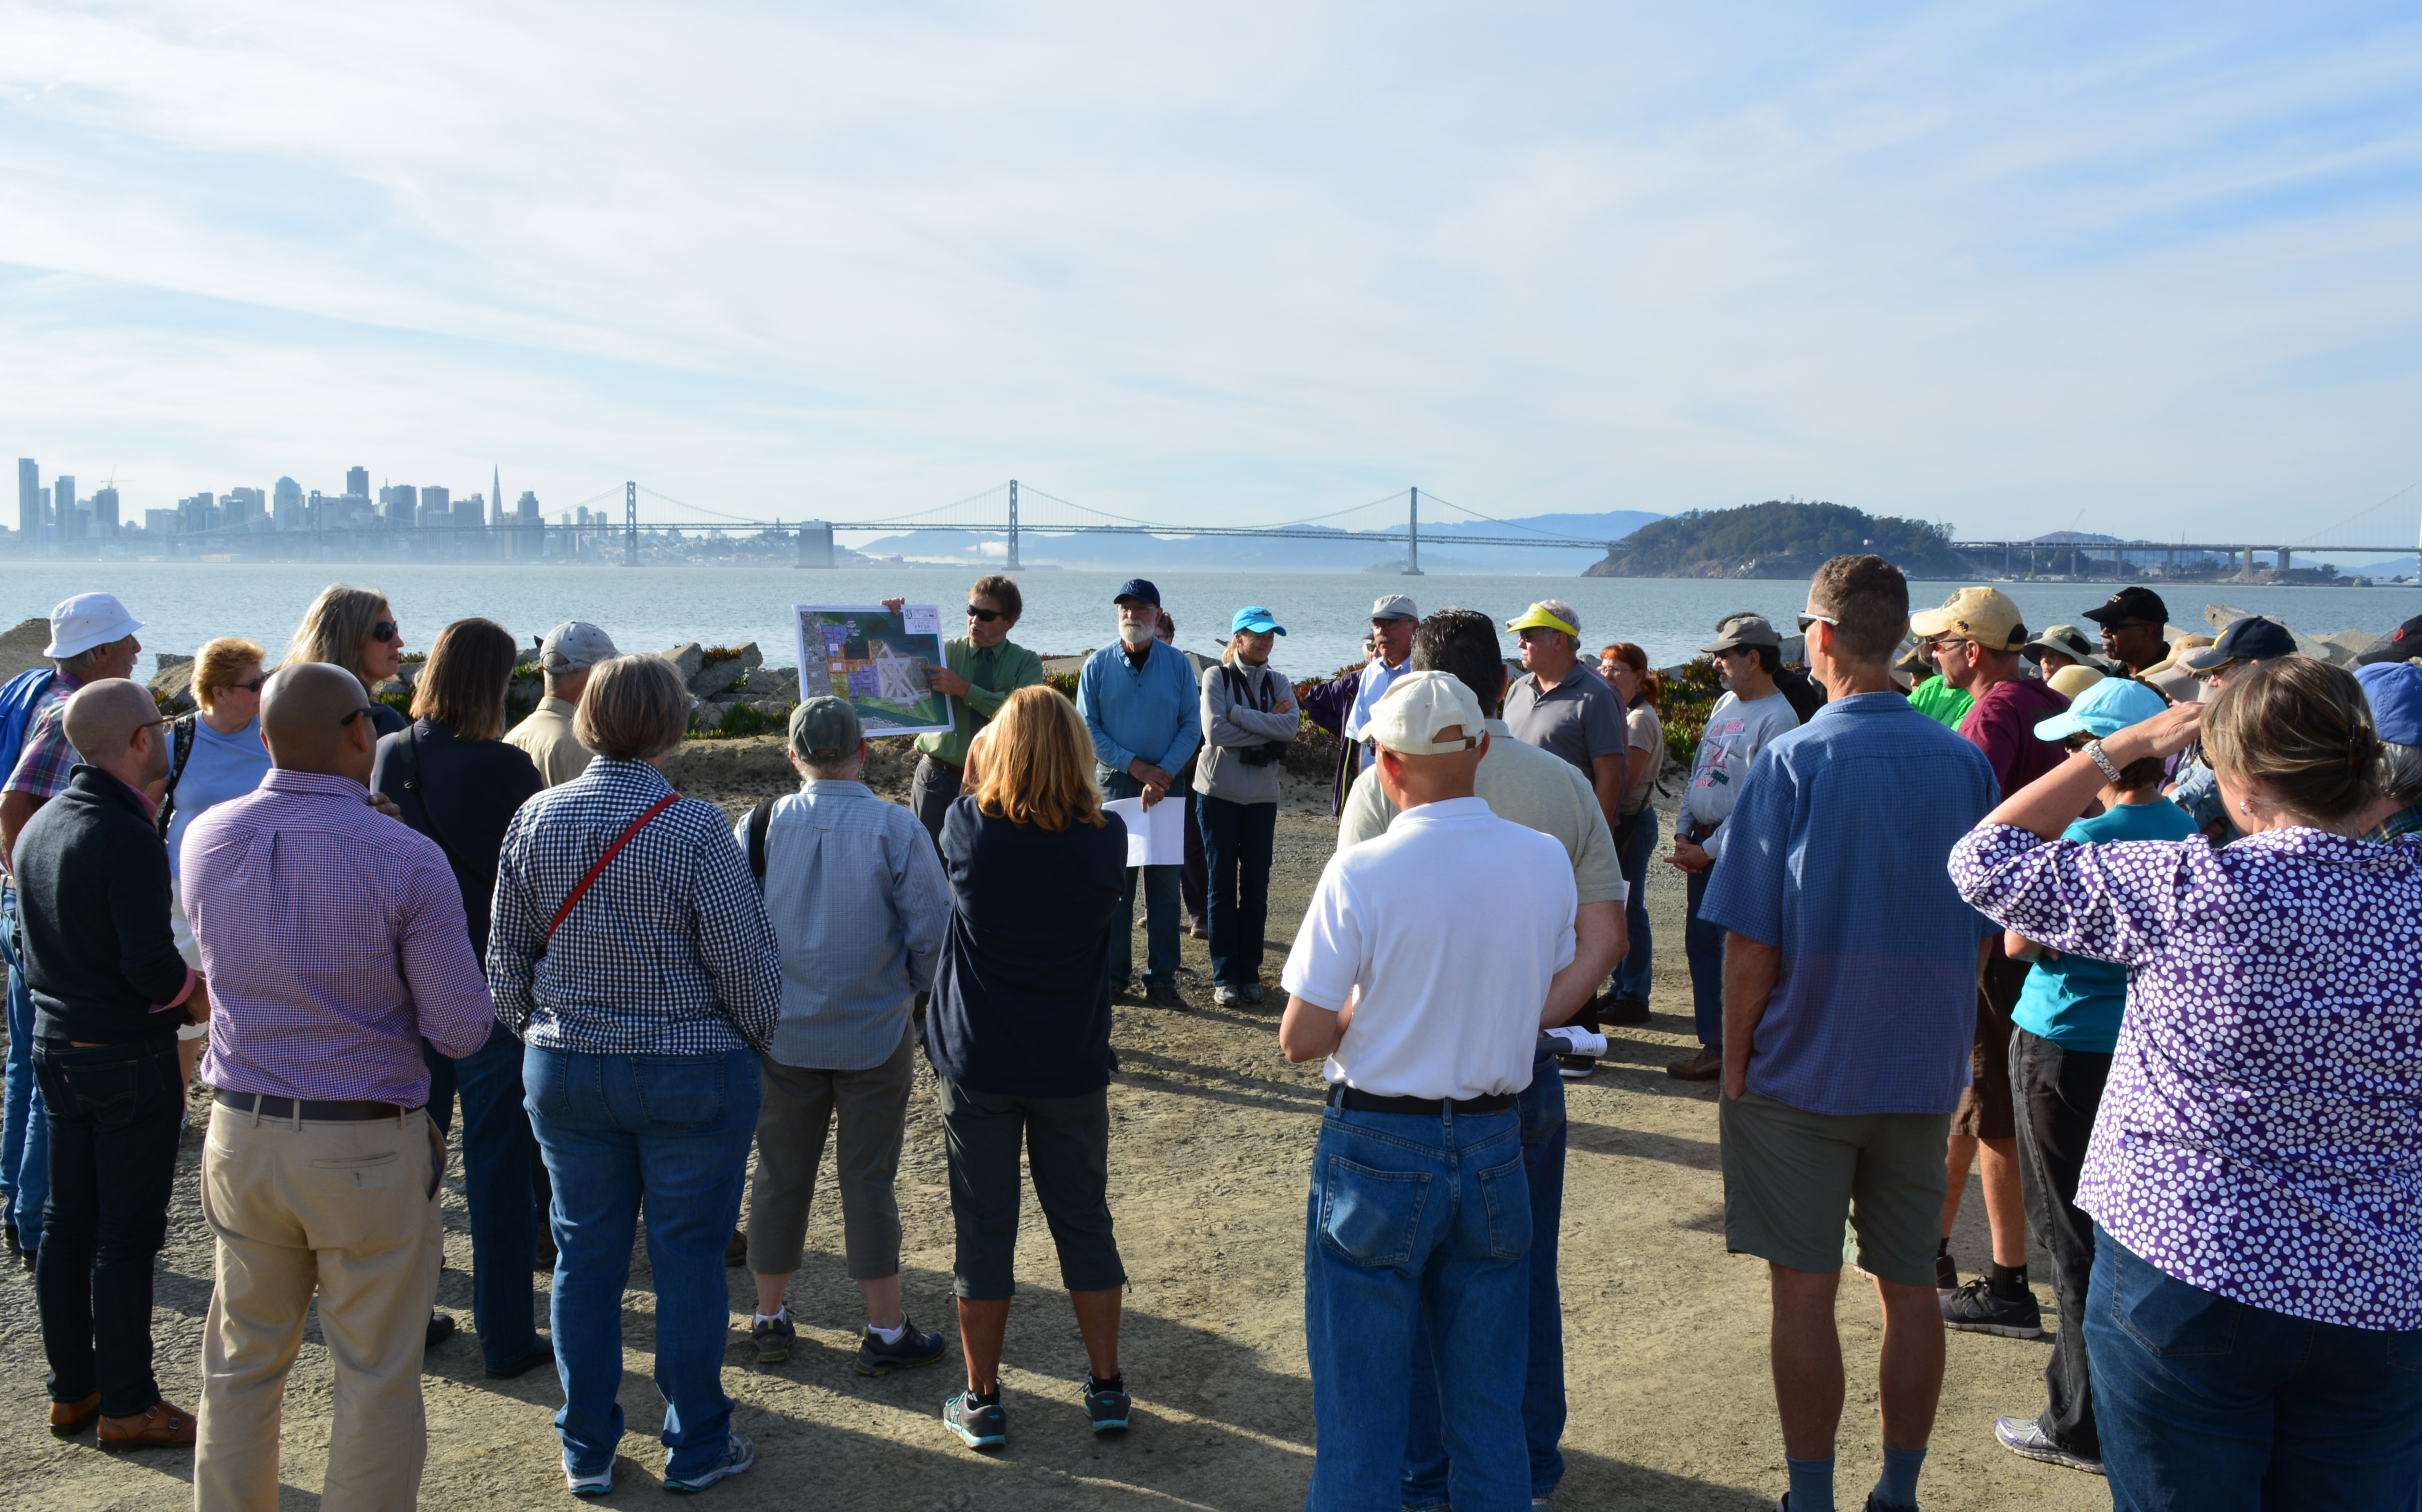 Tour group at the western shoreline listening to Dr. Peter Russell explaining environmental cleanup work the Navy has completed at Site 2.